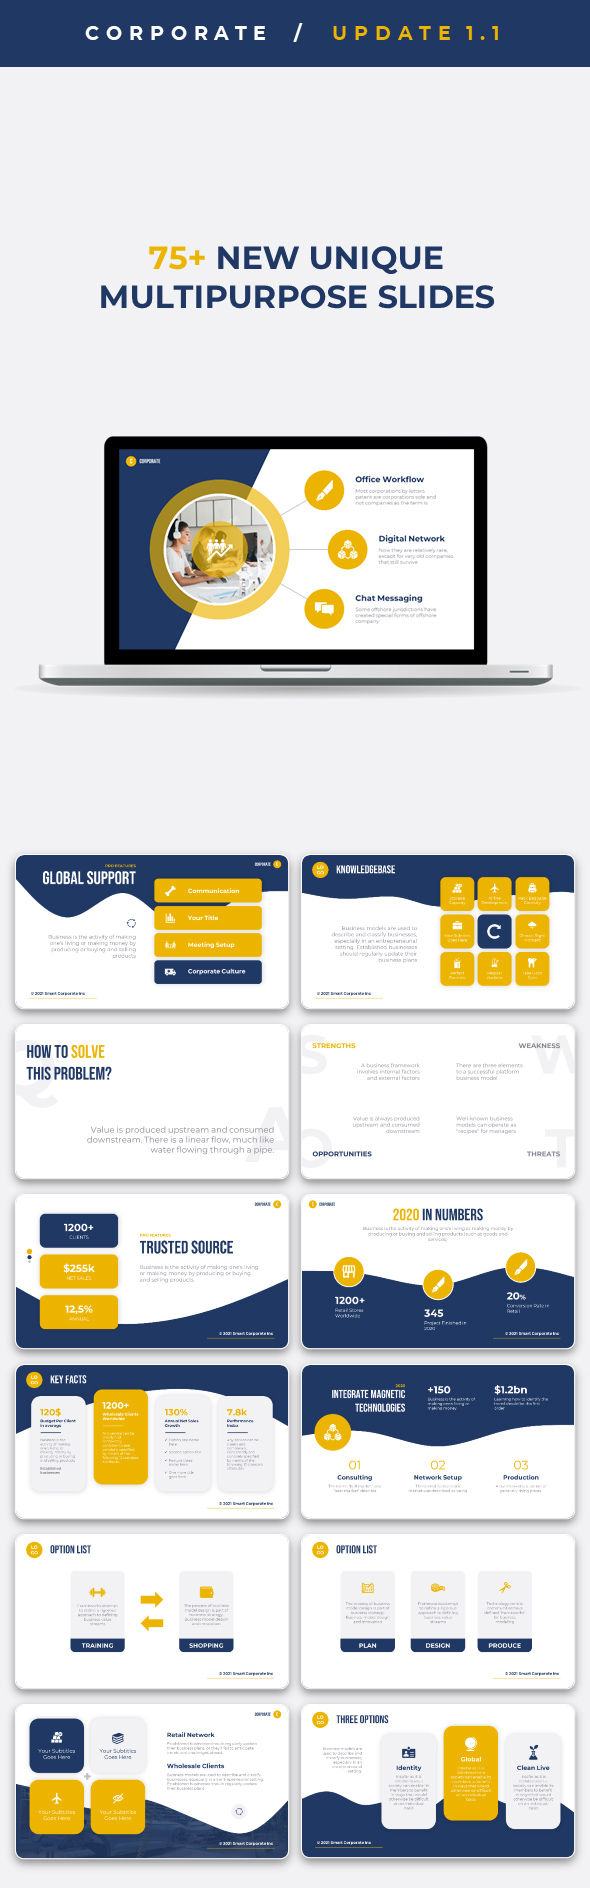 Corporate - Premium PowerPoint Template for Business - 1